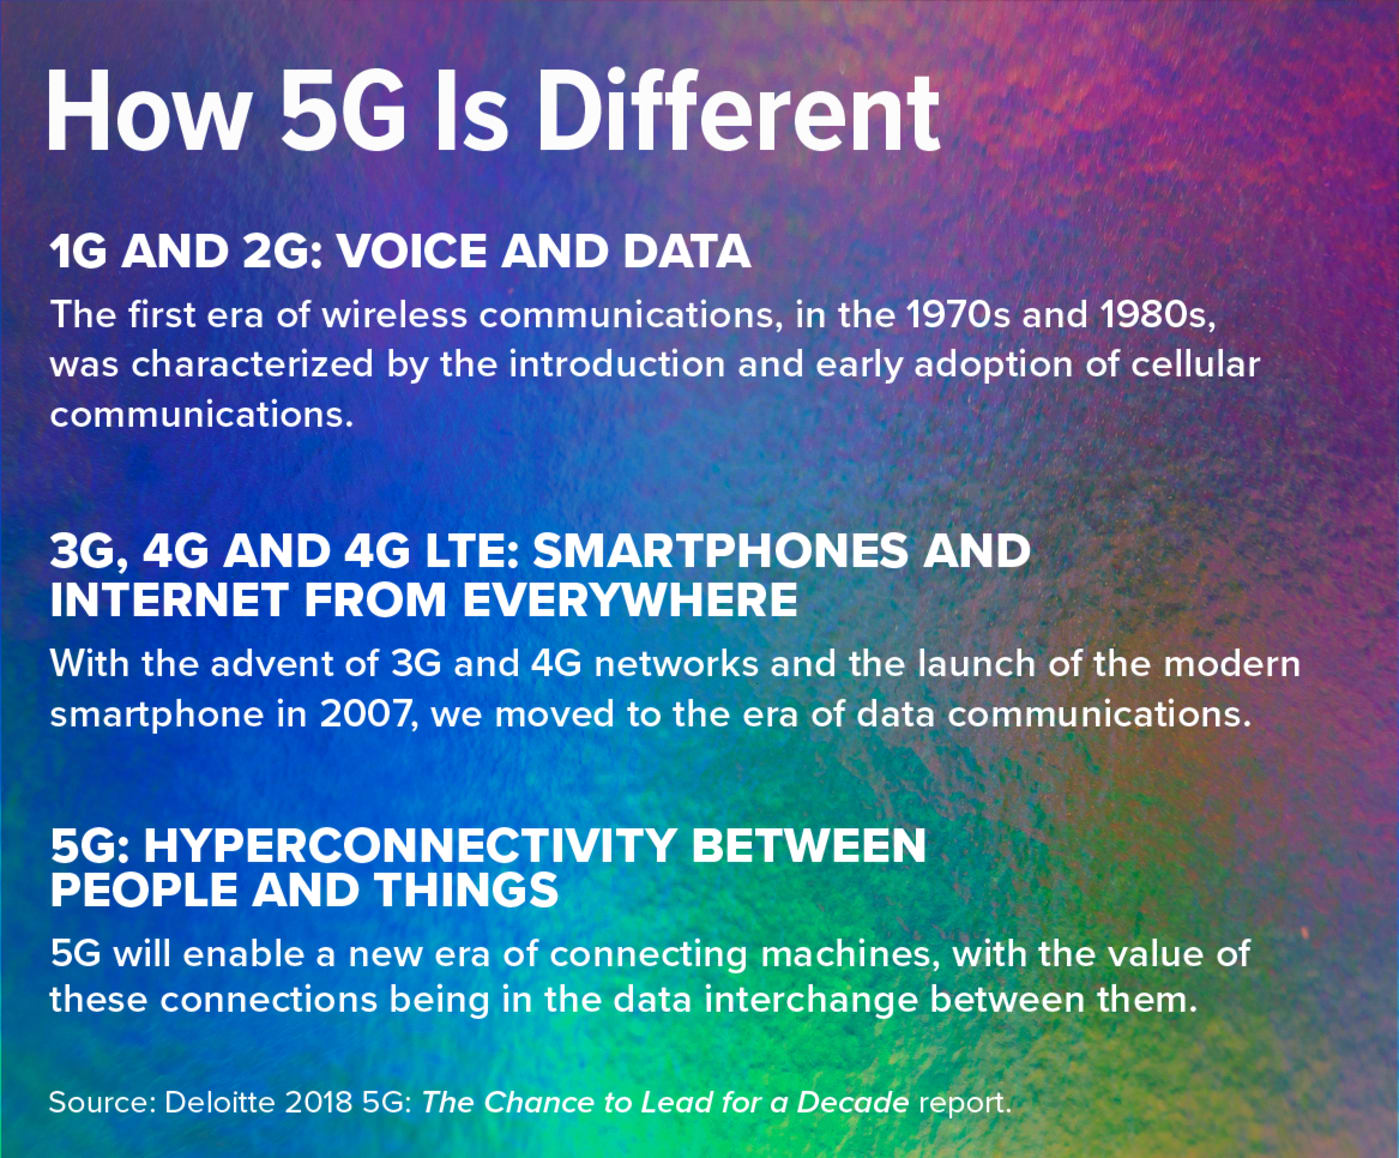 how is 5G Different